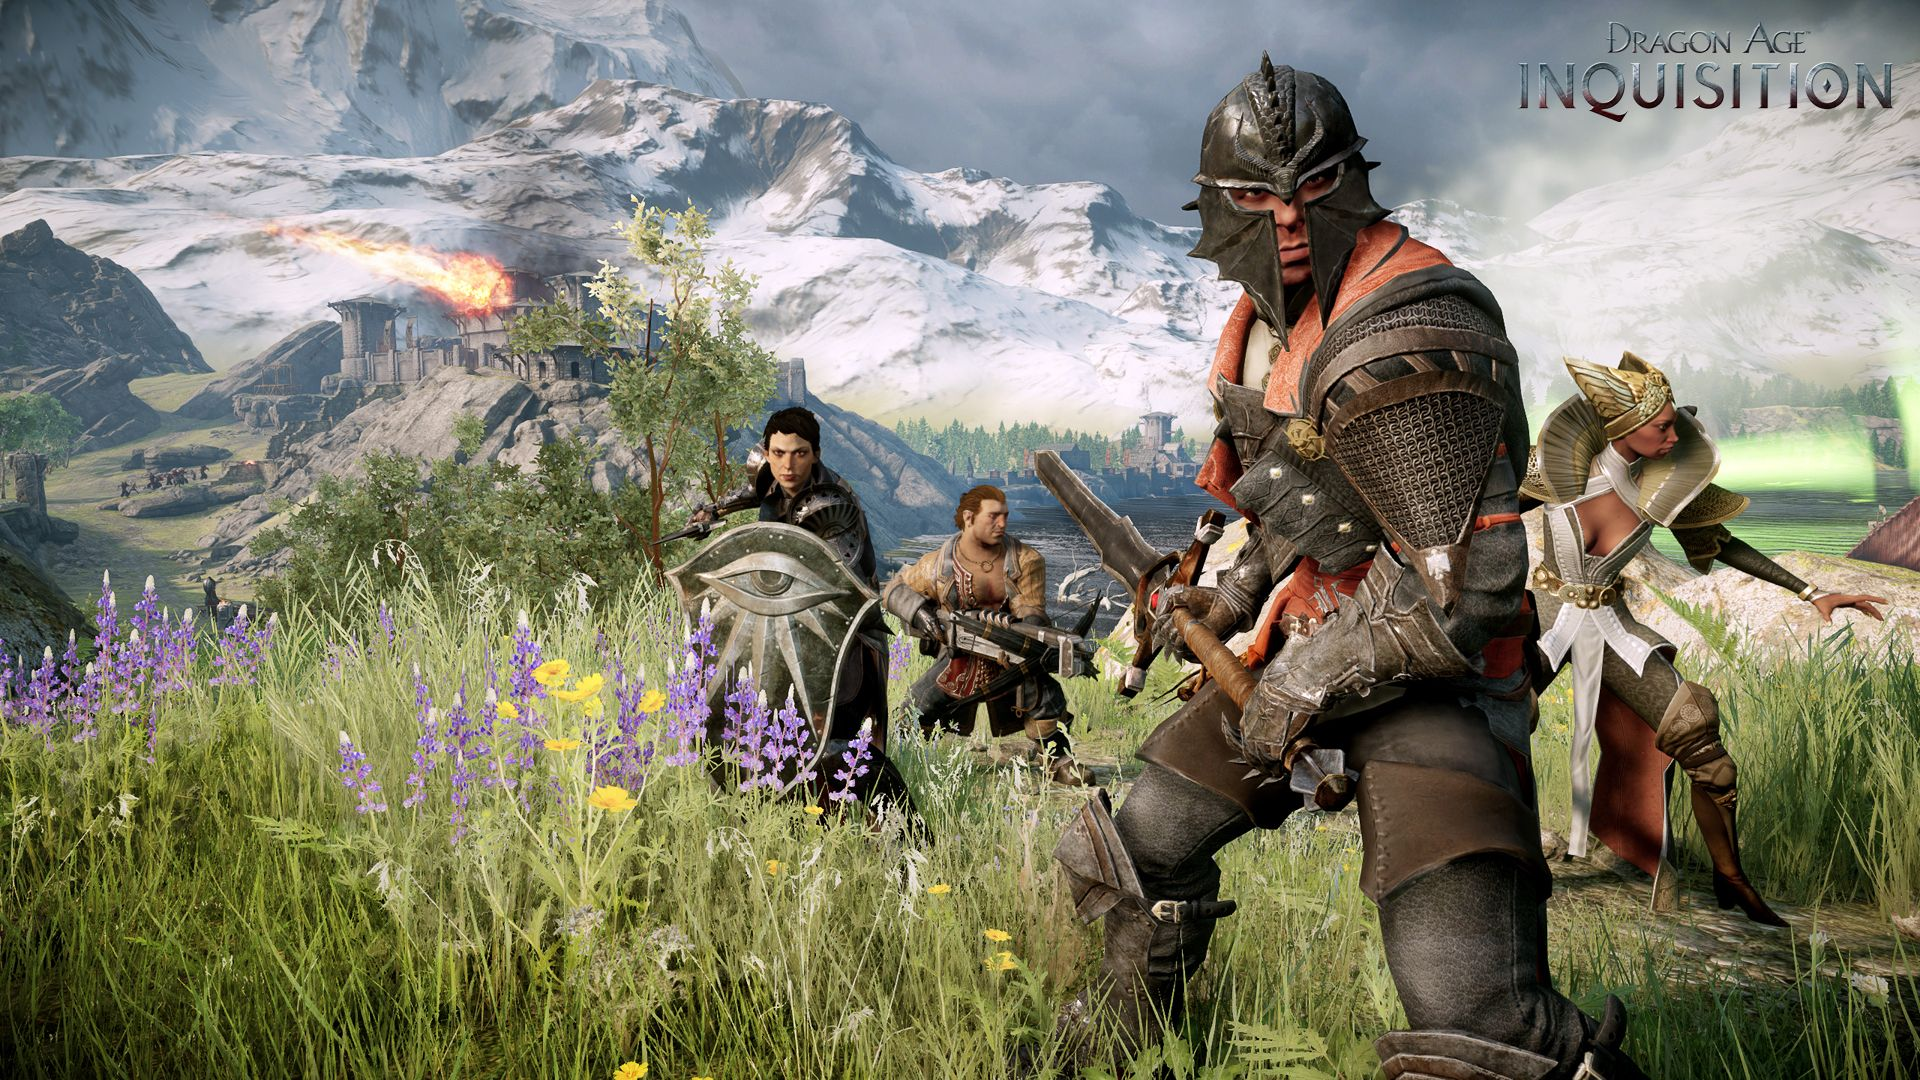 Dragon Age: Inquisition – nobody expects, well… you know the rest